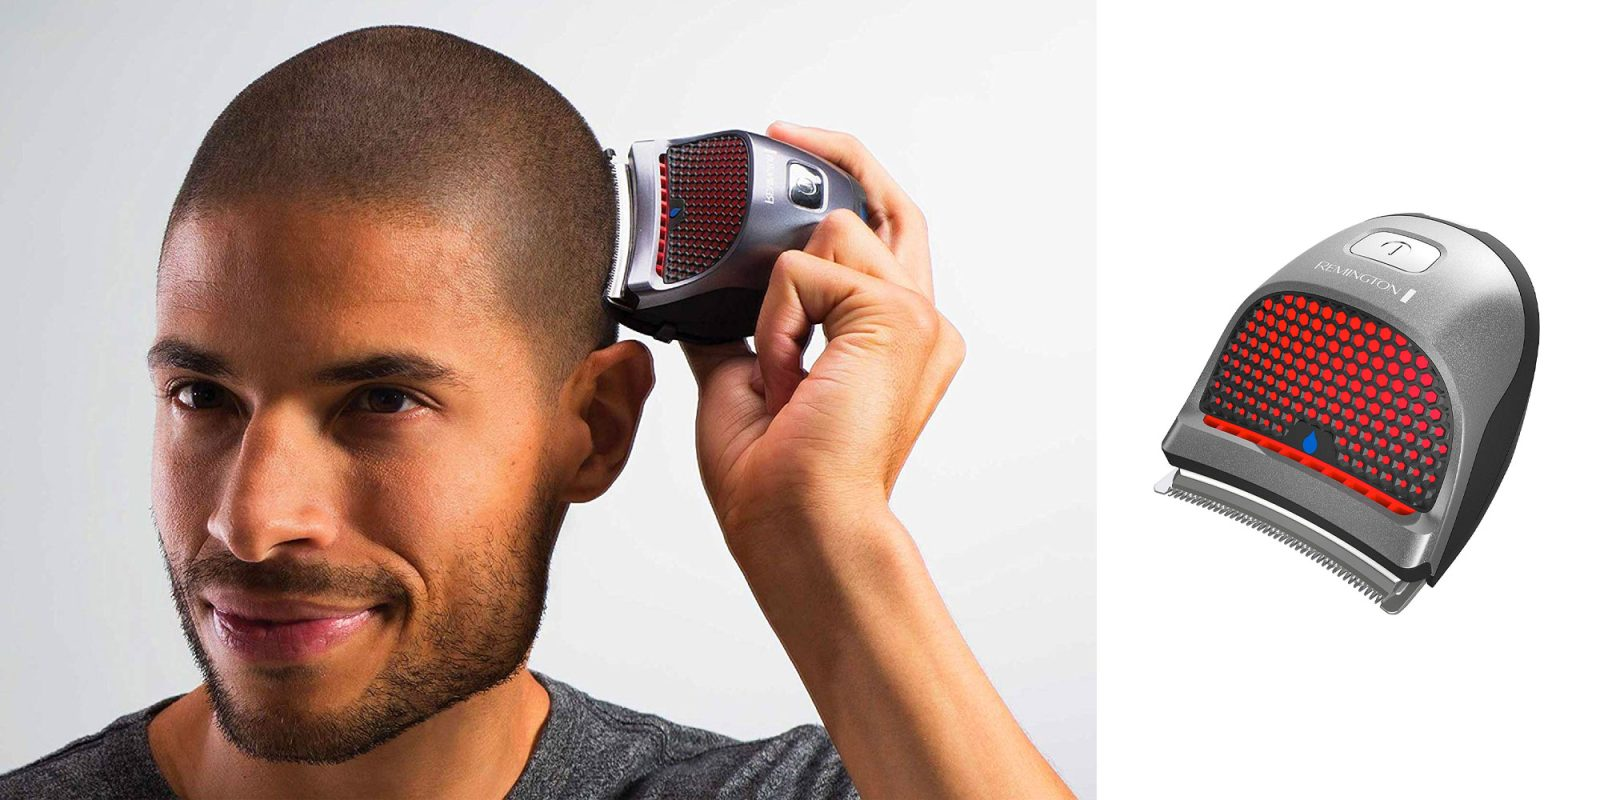 Give yourself a haircut with Remington's Shortcut Pro for $31.50 (Reg. $50)